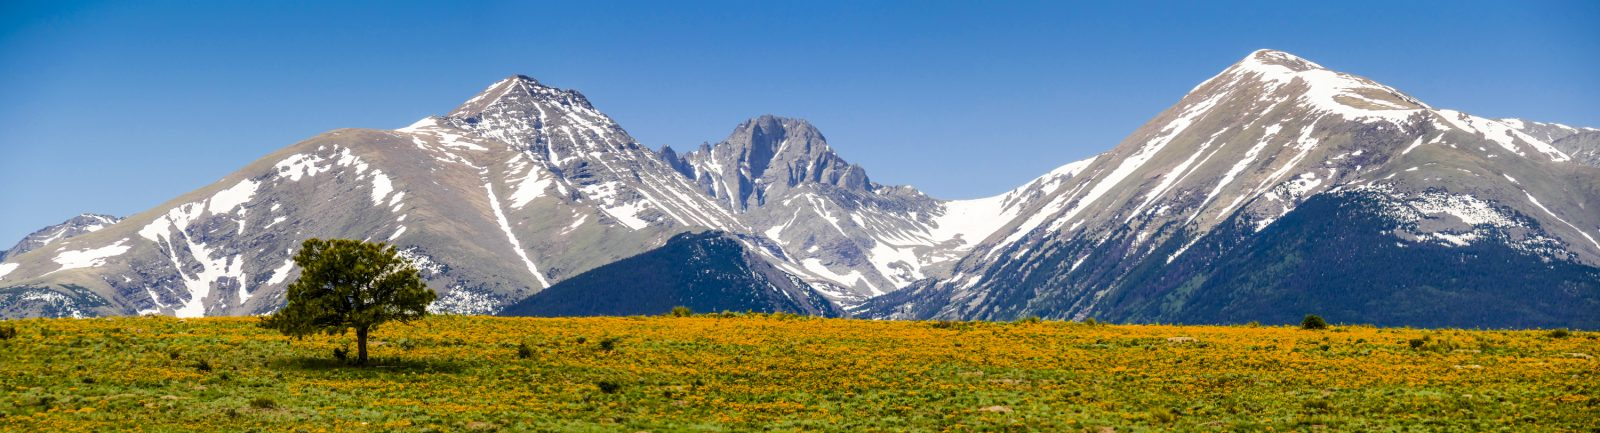 Lone Tree and Mountain Meadow